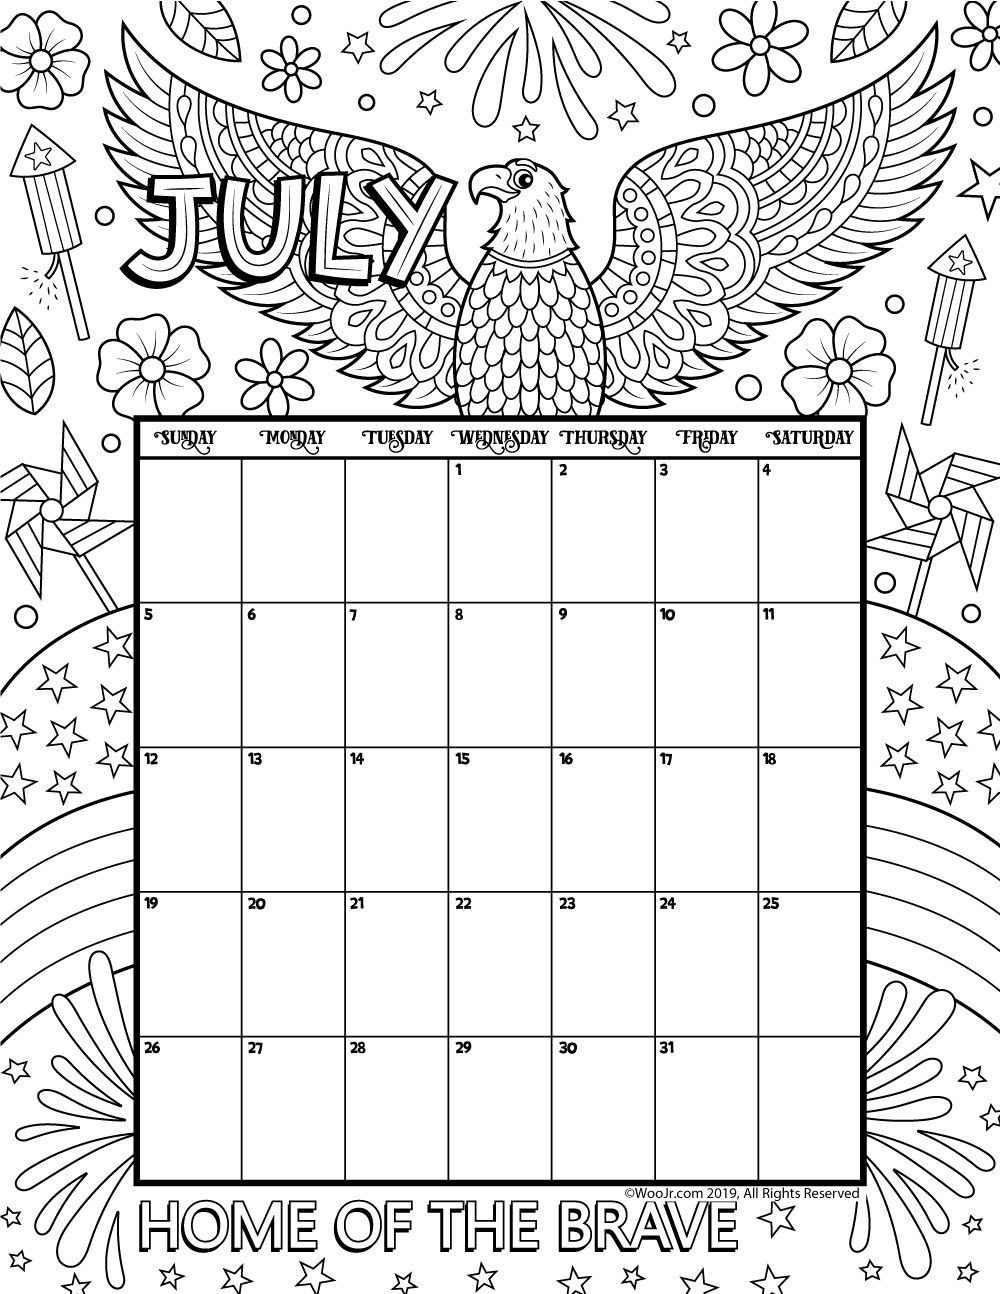 July 2020 Coloring Calendar Coloring calendar, Kids